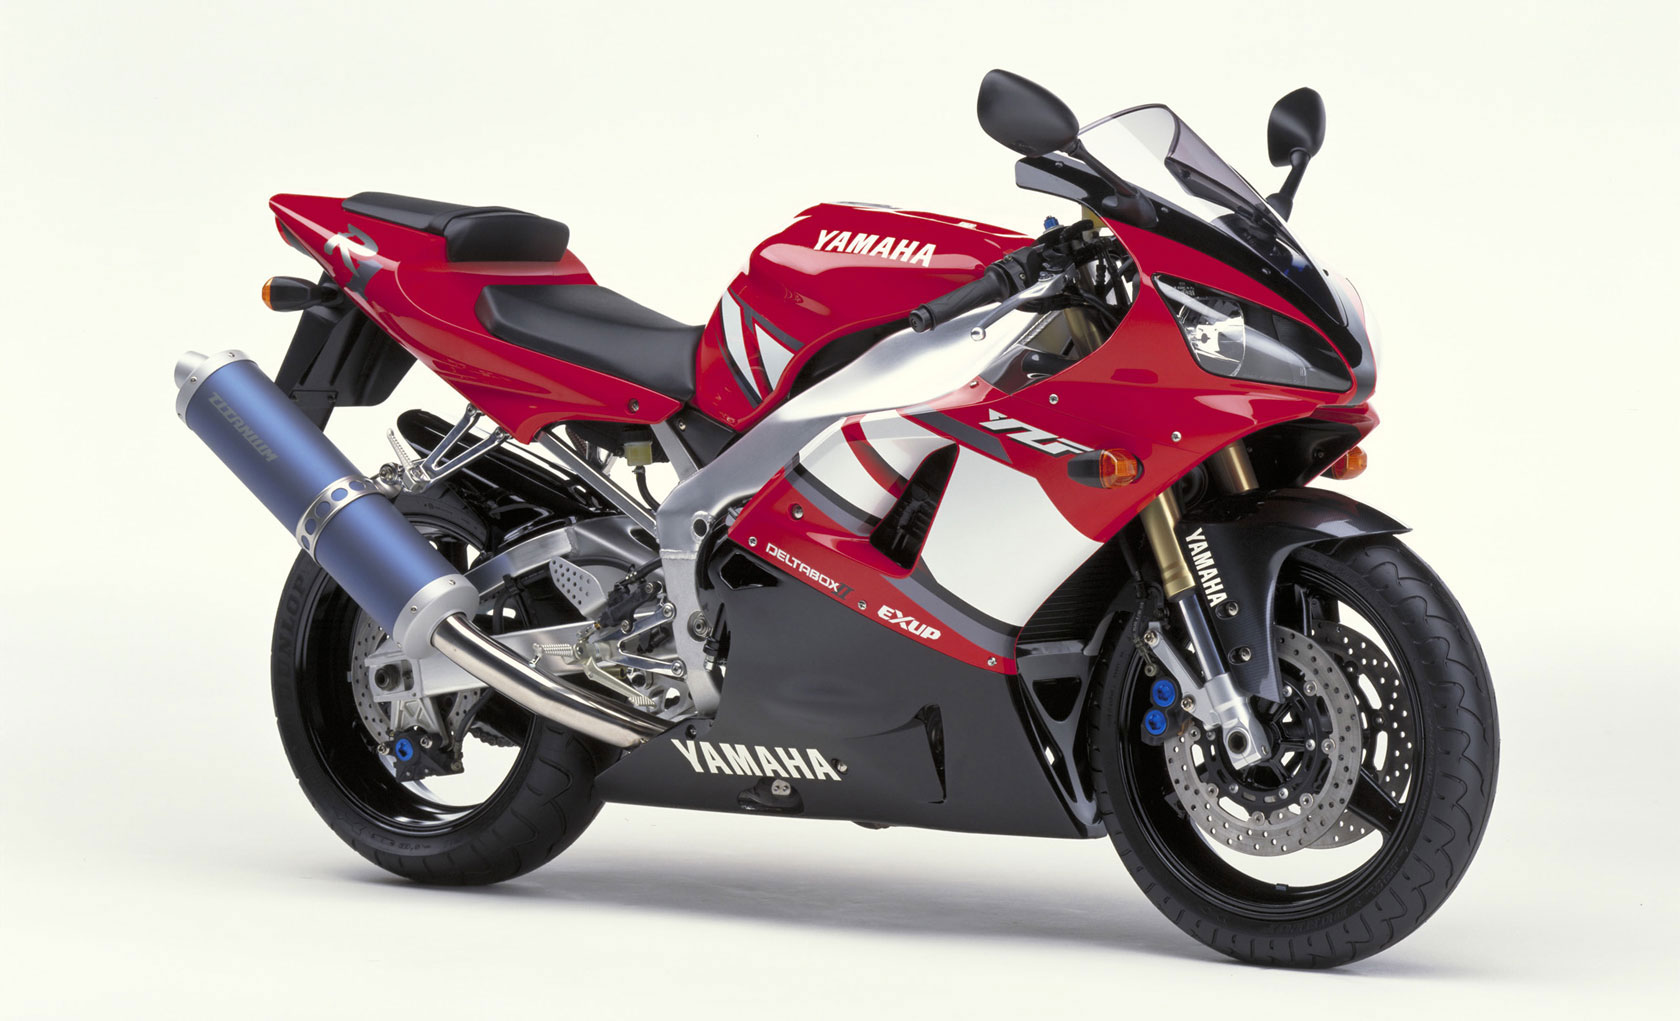 Peachy 2001 Yamaha Yzf R6 Review Gmtry Best Dining Table And Chair Ideas Images Gmtryco